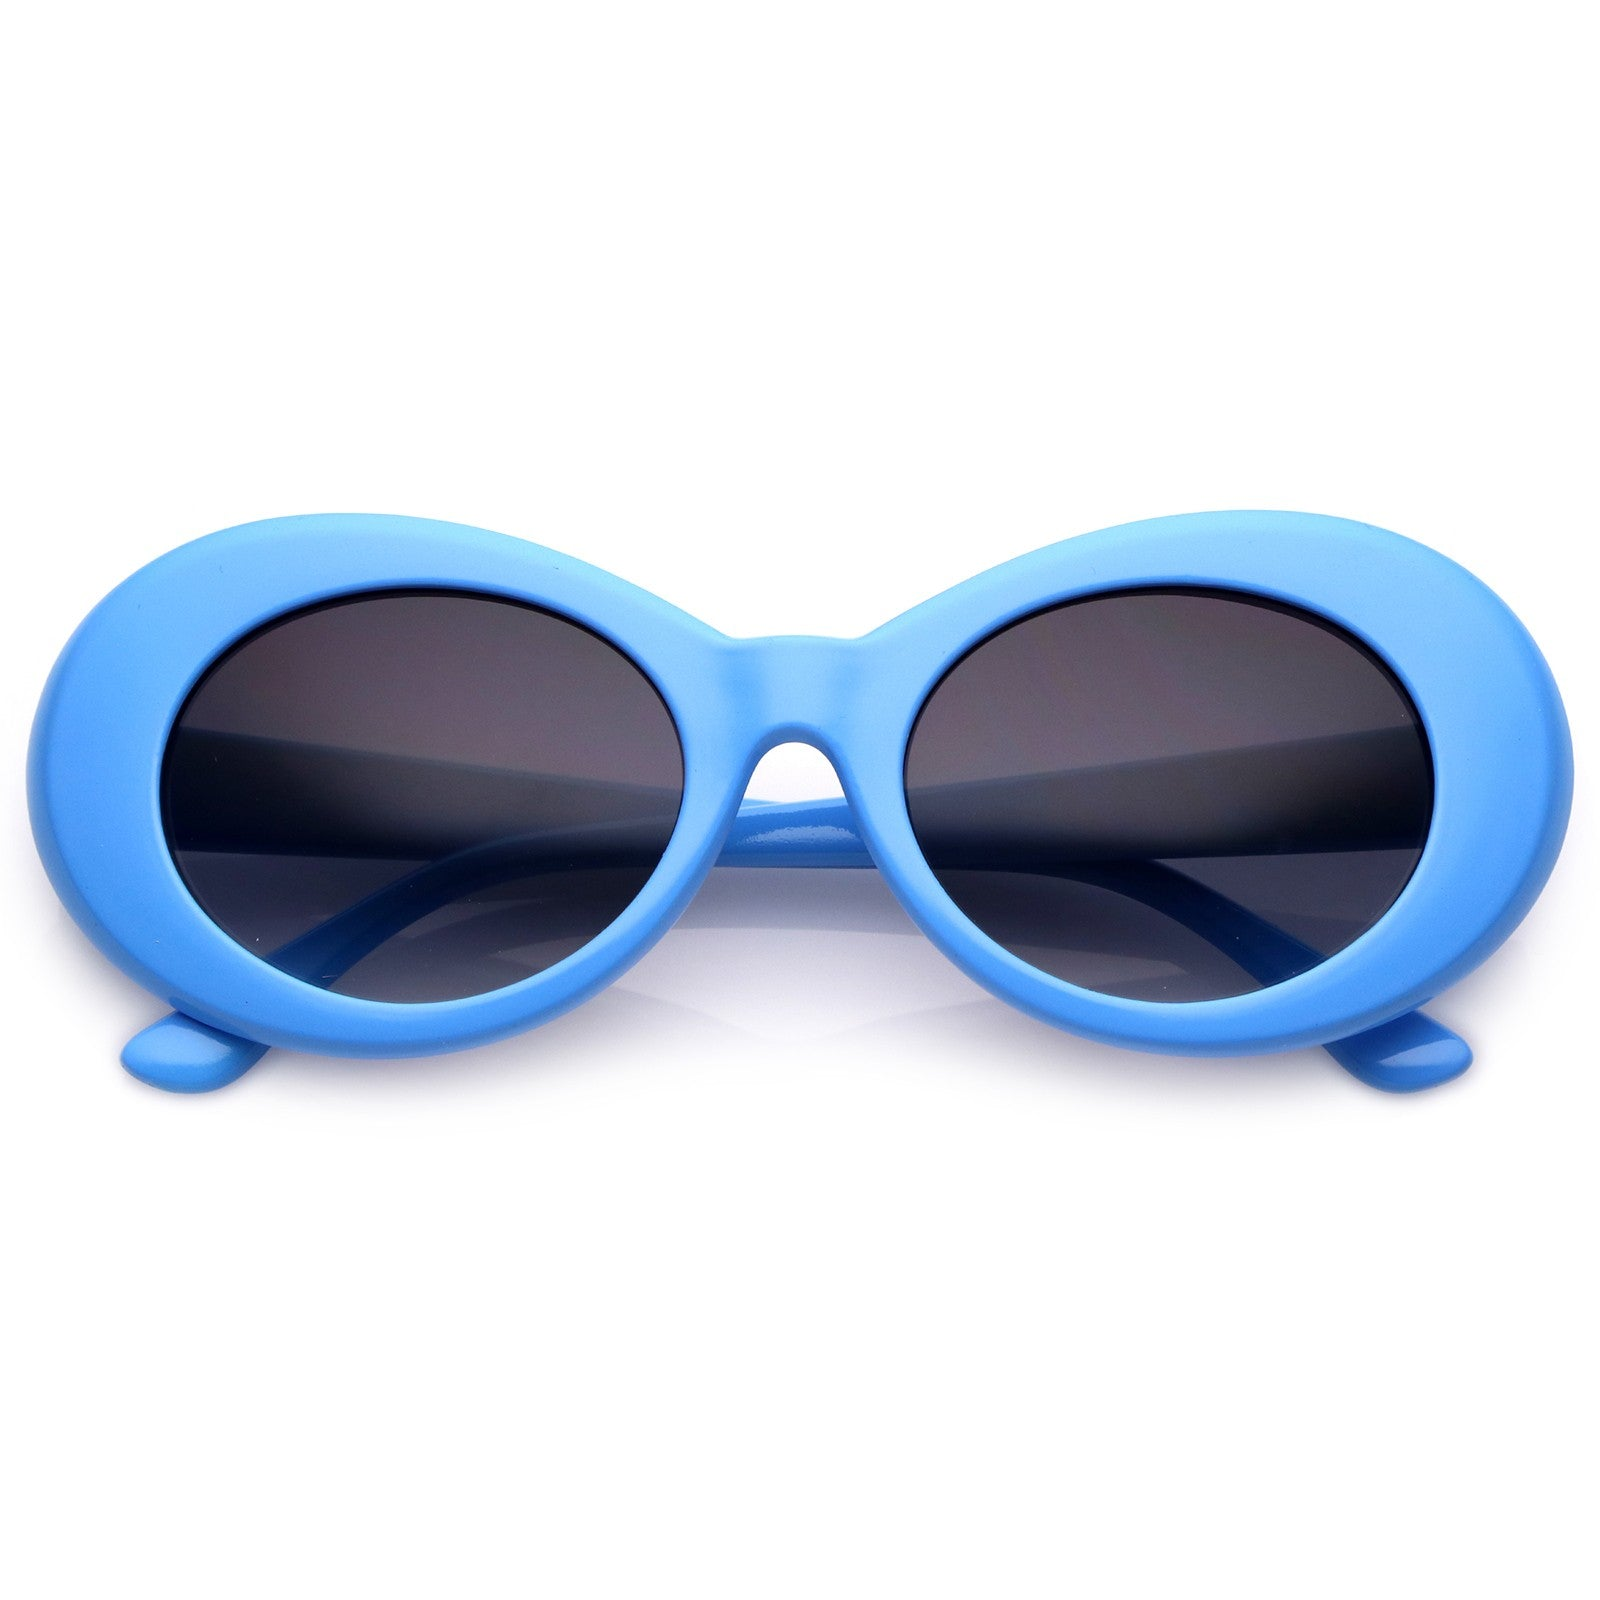 Retro Colorful Oval Sunglasses Tapered Arms Neutral Colored Gradient Lens 50mm (Blue / Lavender)